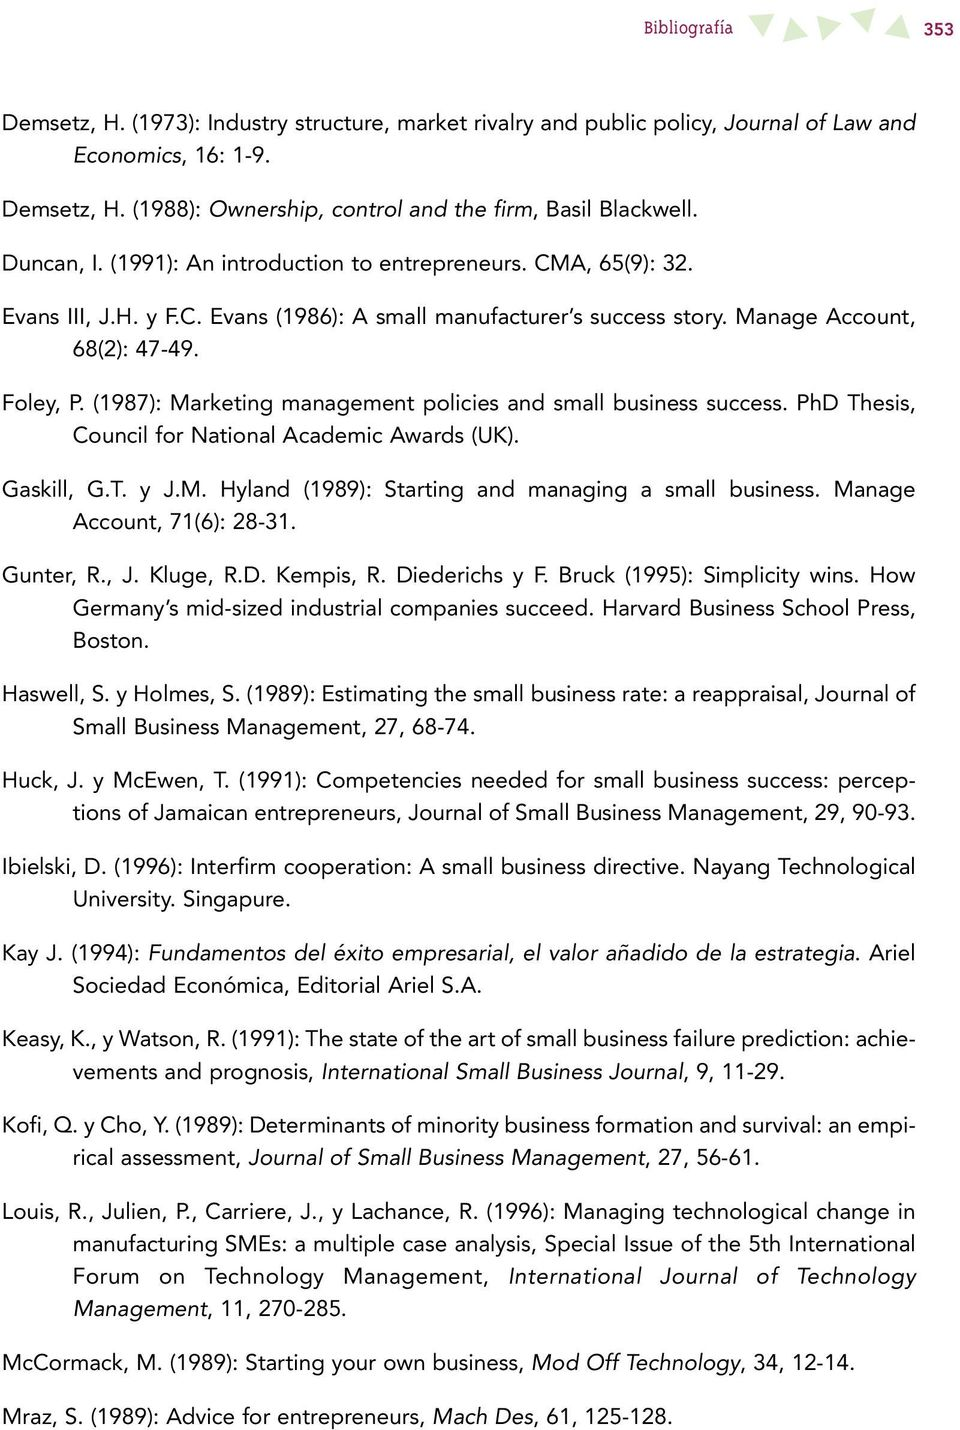 (1987): Marketing management policies and small business success. PhD Thesis, Council for National Academic Awards (UK). Gaskill, G.T. y J.M. Hyland (1989): Starting and managing a small business.